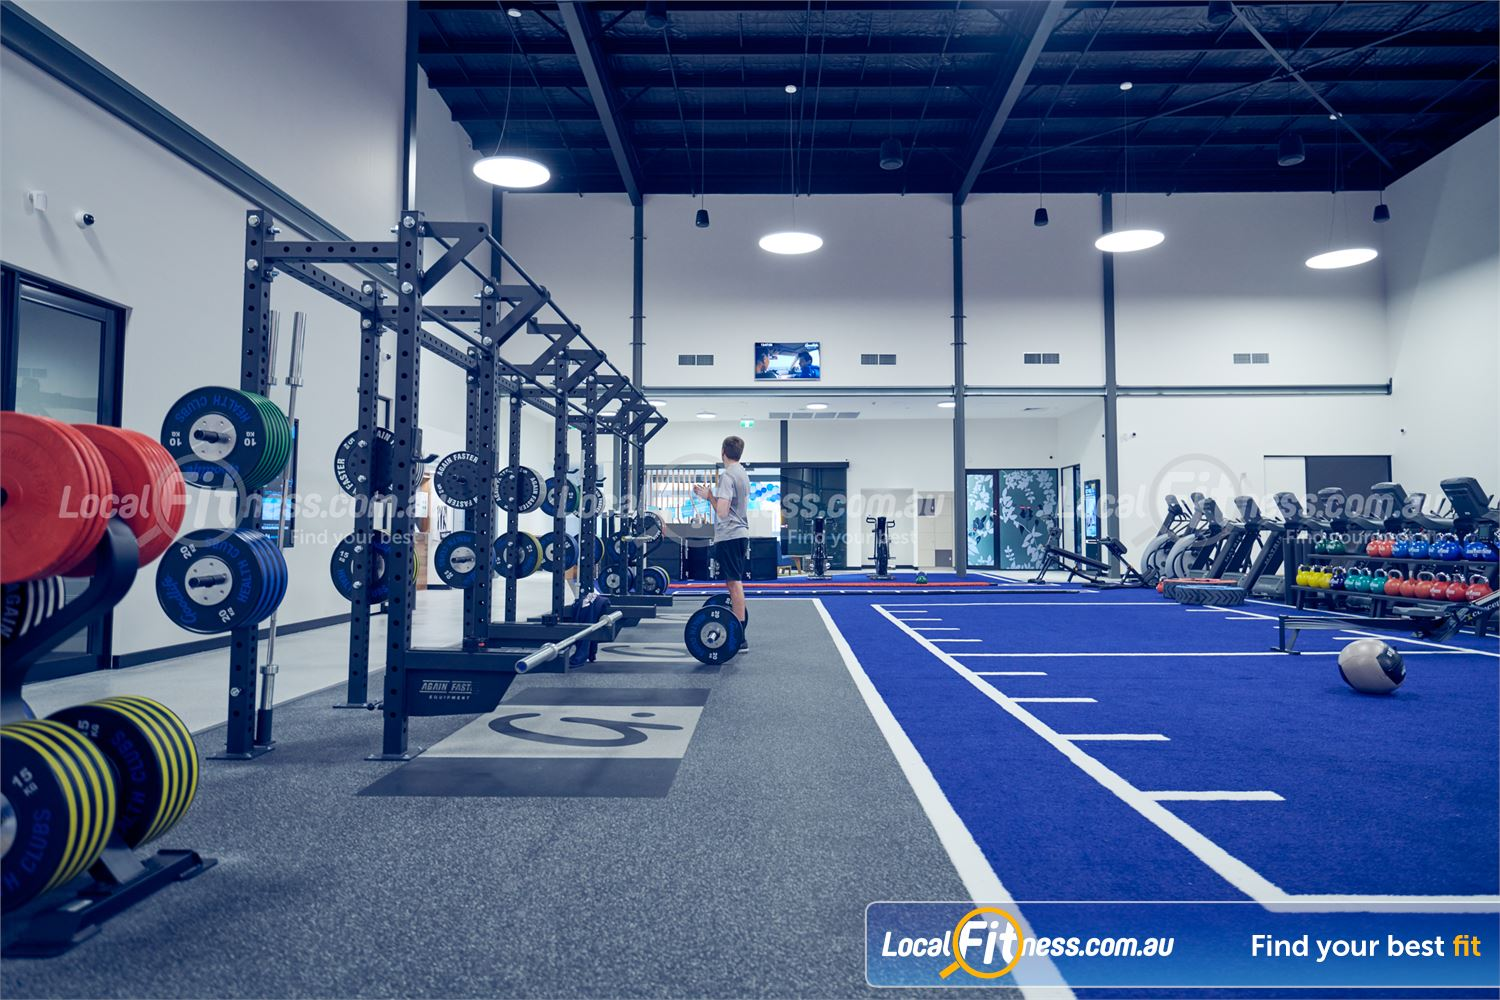 Goodlife Health Clubs Near Ringwood East Goodlife Ringwood will include a functional training and HIIT gym area.